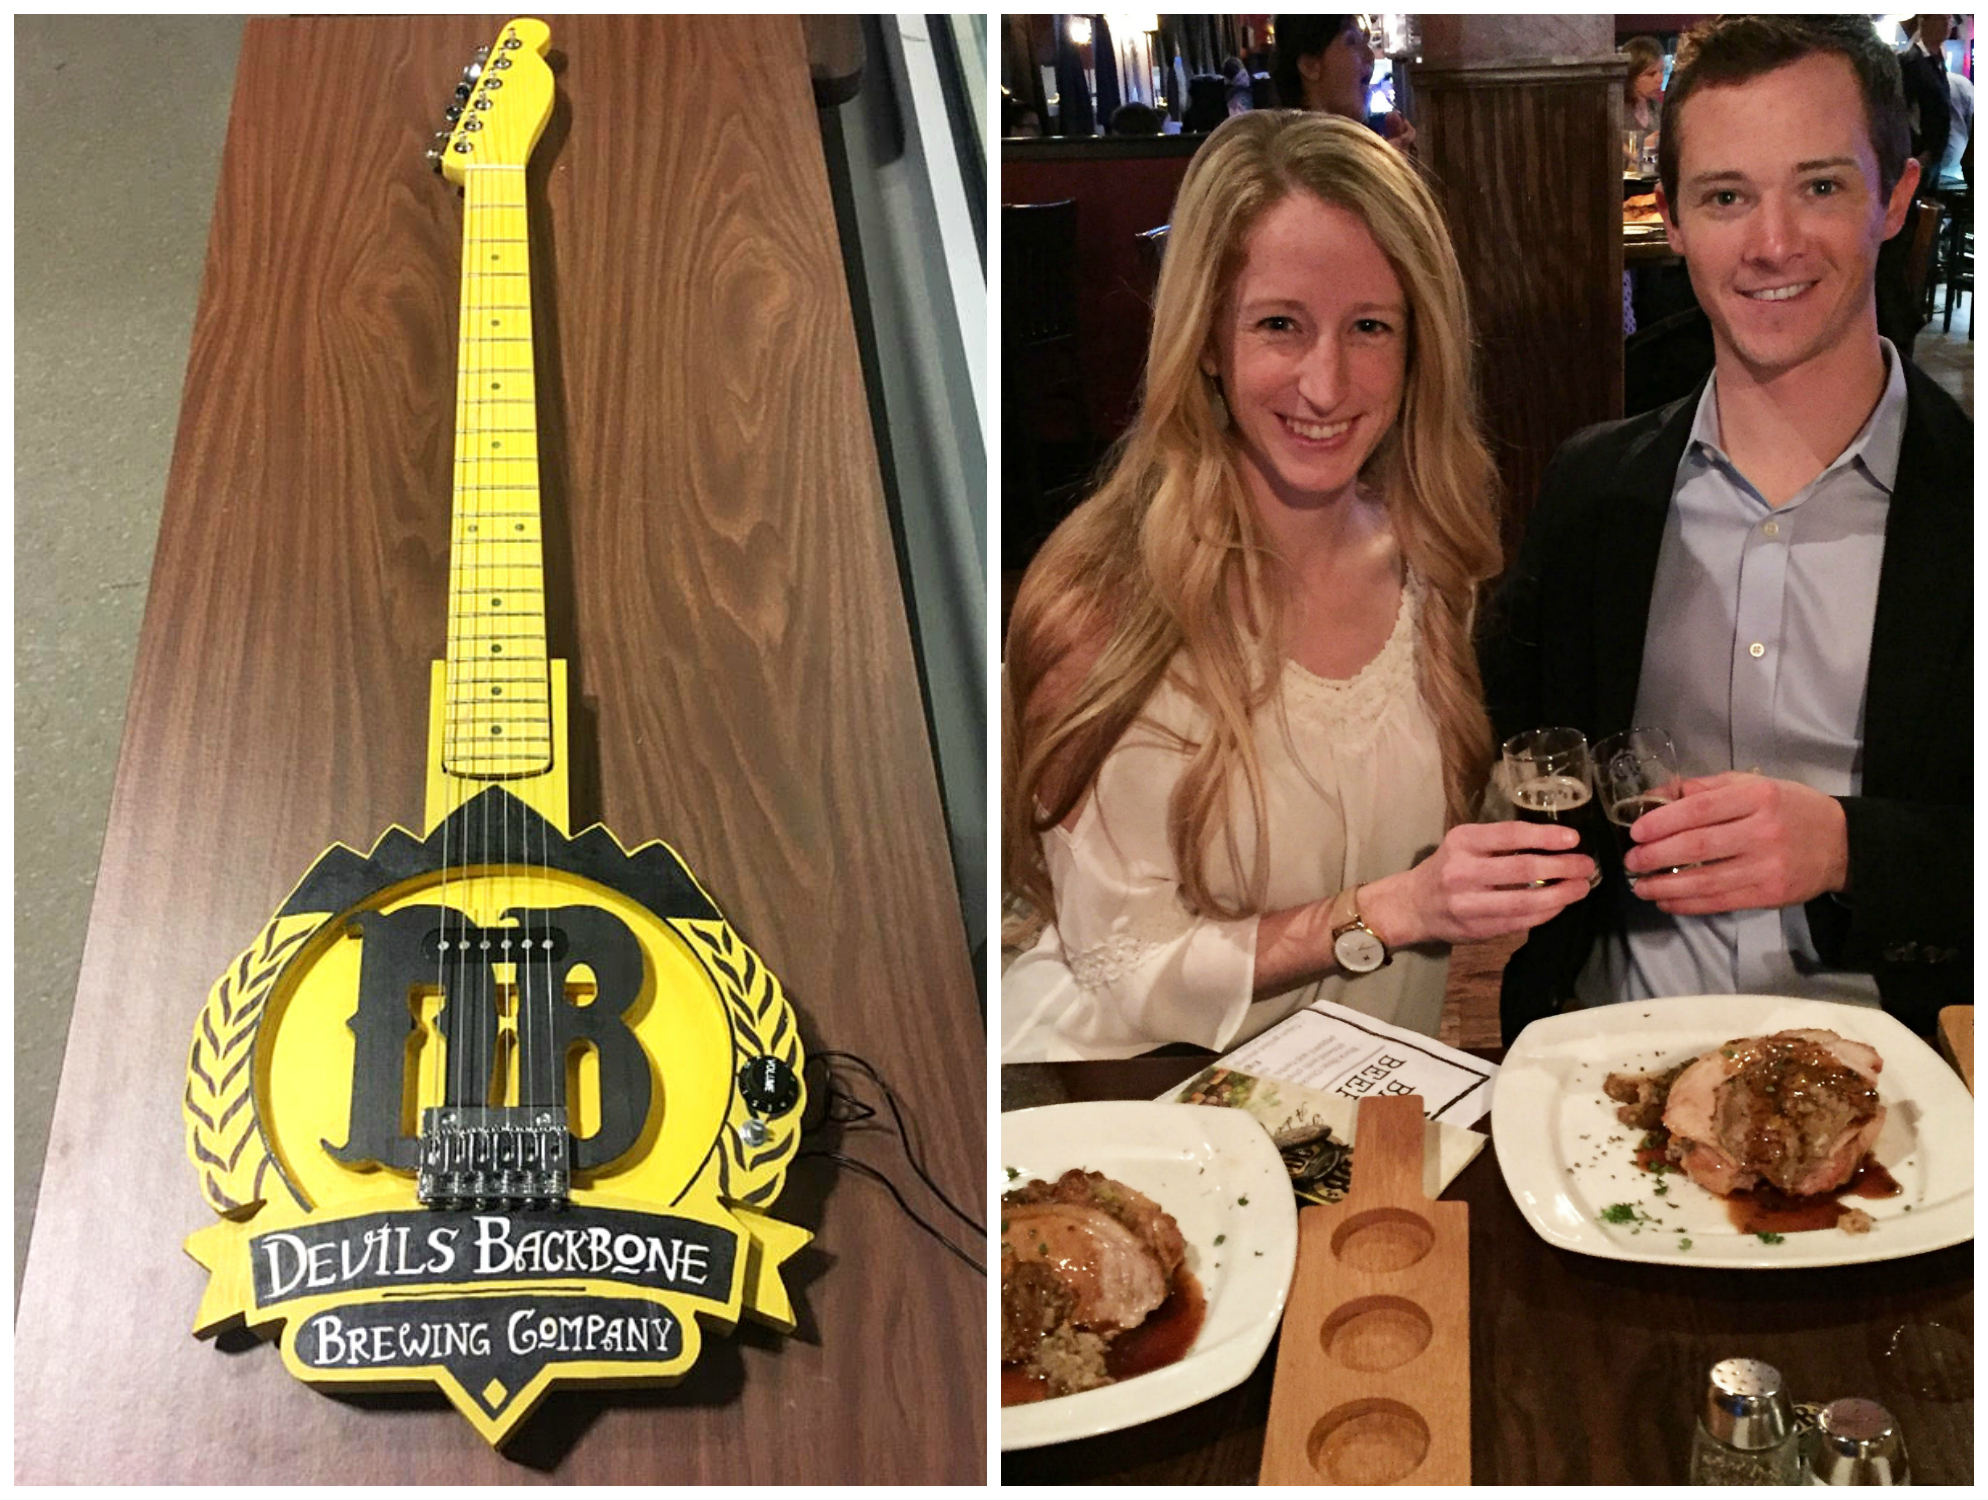 Devils Backbone Brewing Company Dinner | Drink the Day